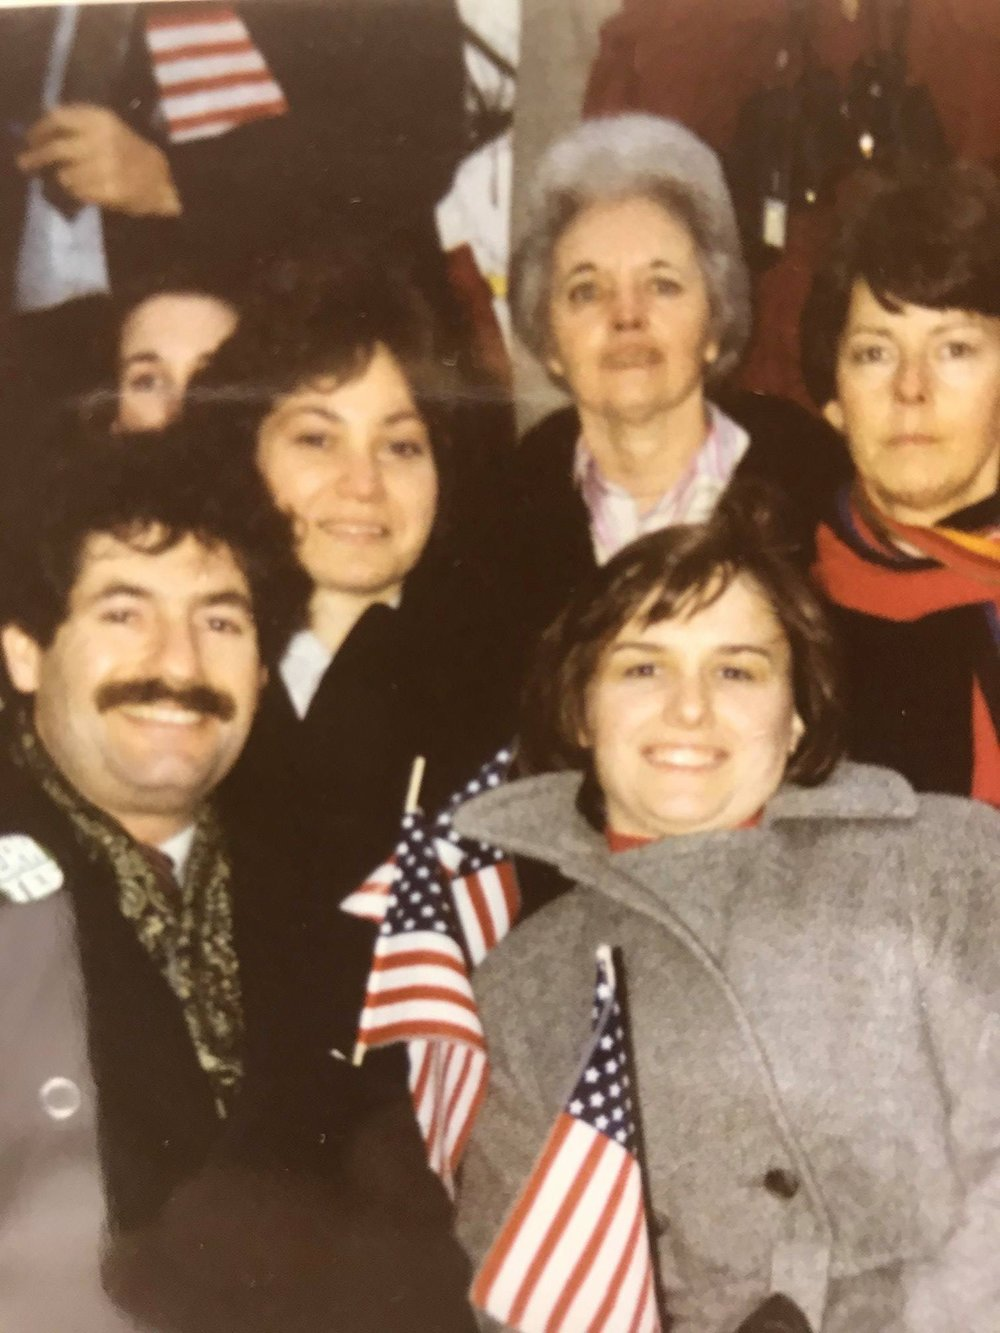 Presidential Inauguration – Joseph Forstadt, Betsy Ring, Connie Whitton, Barbara Wortley, Catherine Bertini and Nancy Thompson (1981)